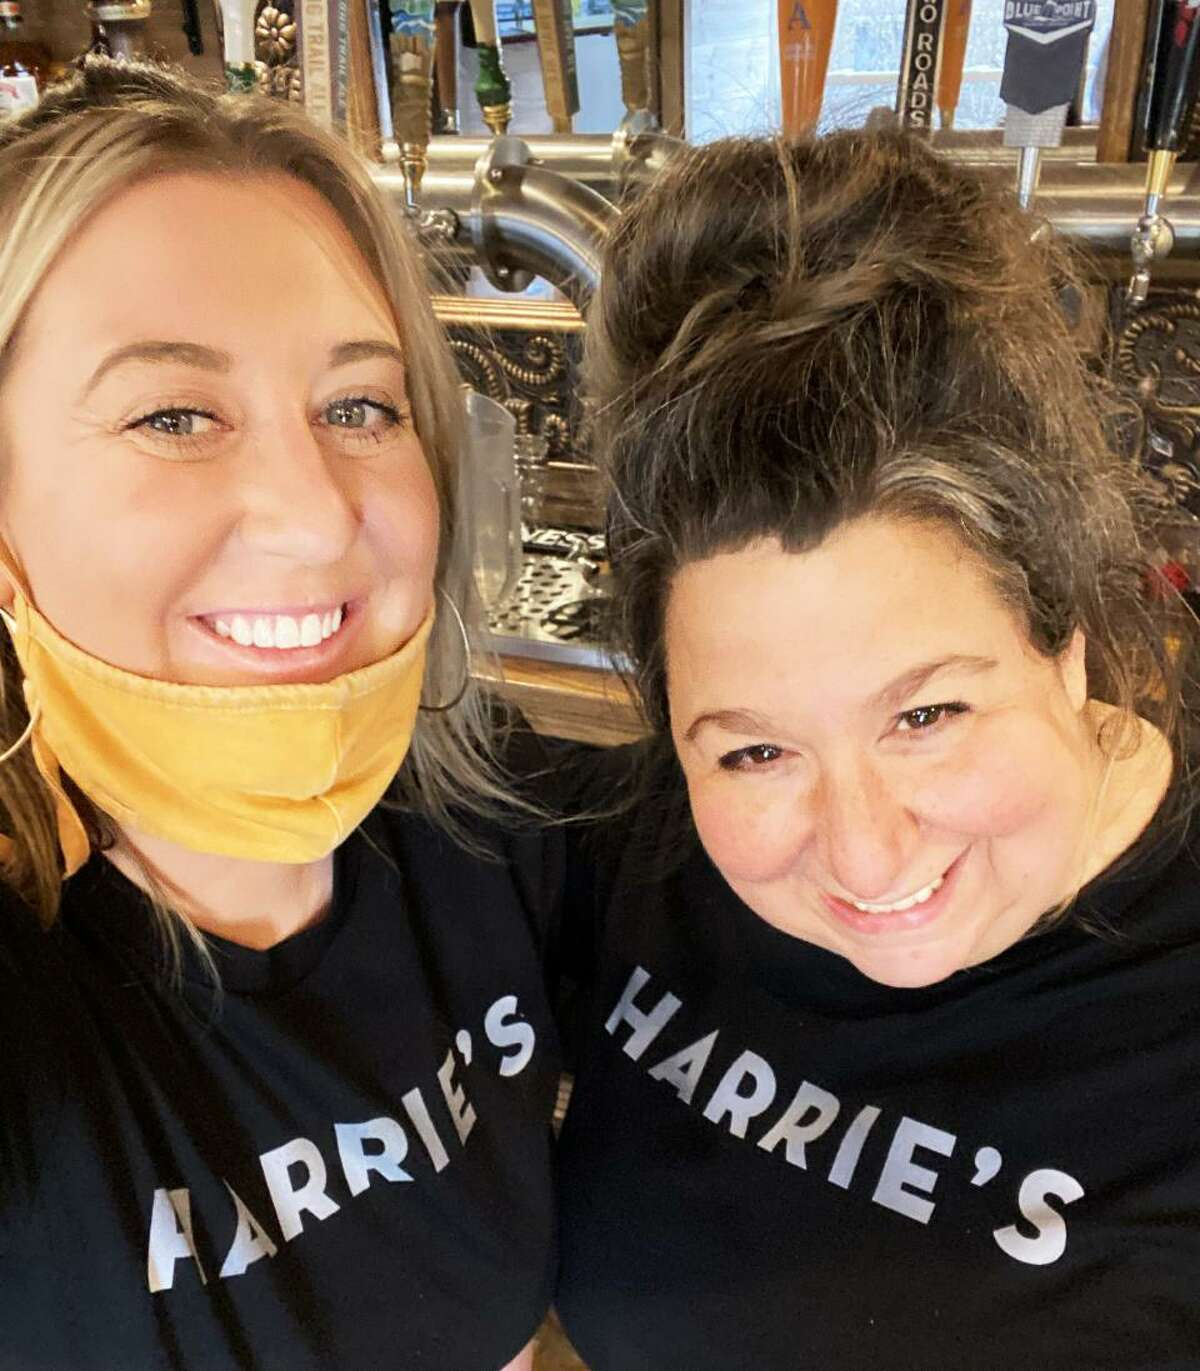 Carrie Carella, right, who owns NoRA Cupcake Co. of Middletown, and Heather Kelly, who worked for Carella at NoRA, recently launched Harrie's Jailhouse in the old Pameacha Jail on Warwick Street. The pub-style restaurant features gourmet sandwiches, bar snacks, and signature cocktails with a nod to the building's history, such as The Capone and The Pen.